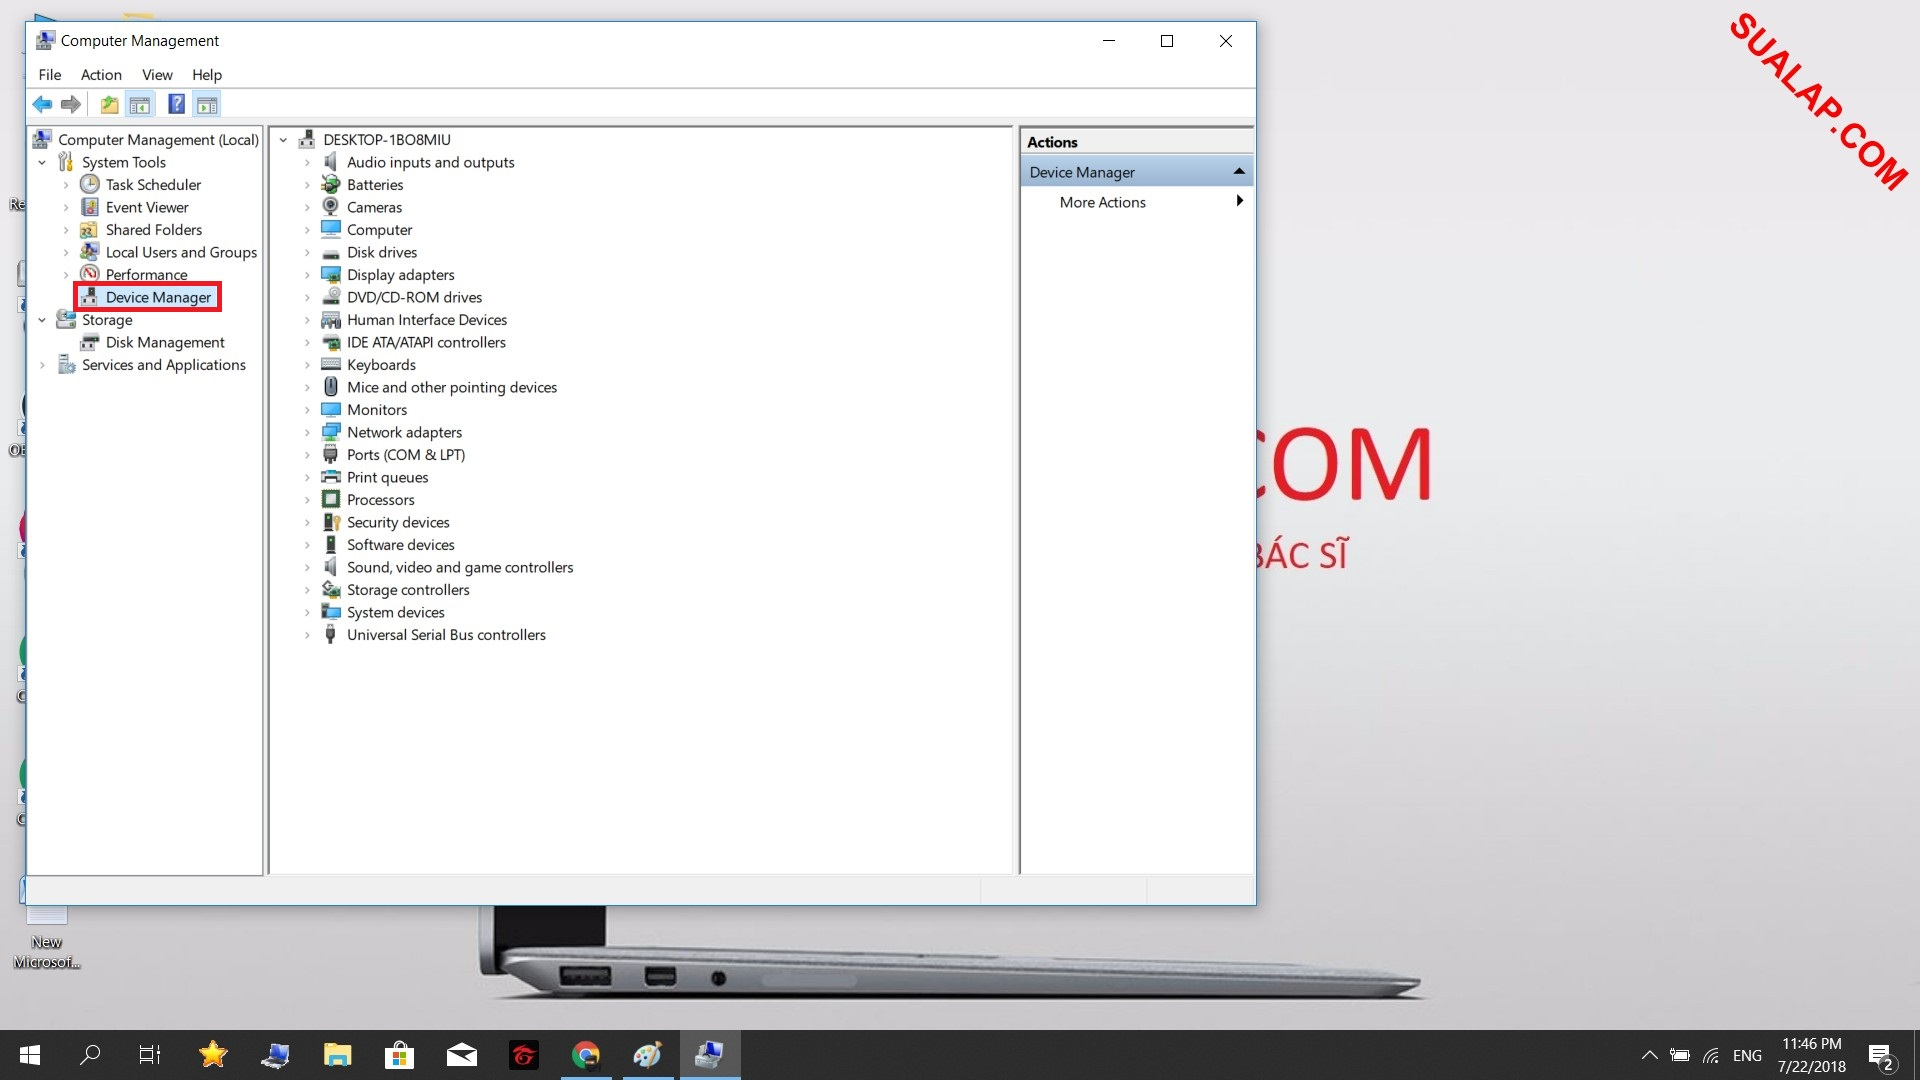 Tiếp tục chọn Device Manager